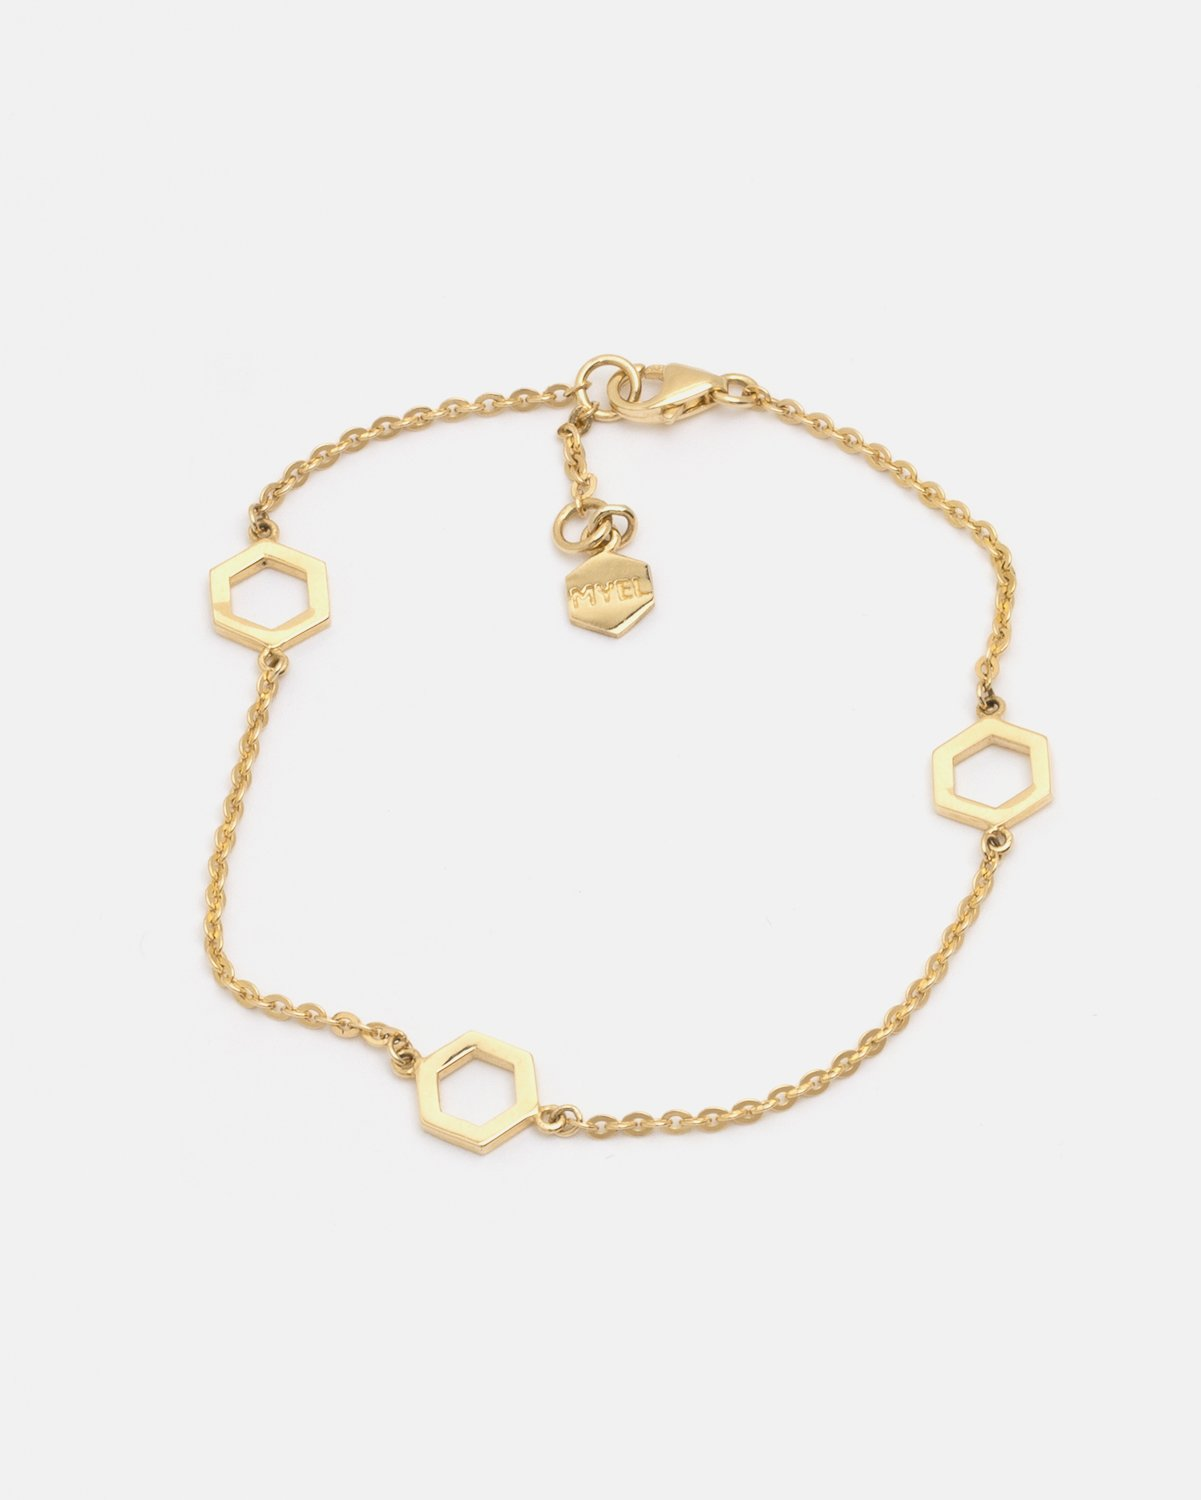 Essaim Bracelet in Yellow Gold